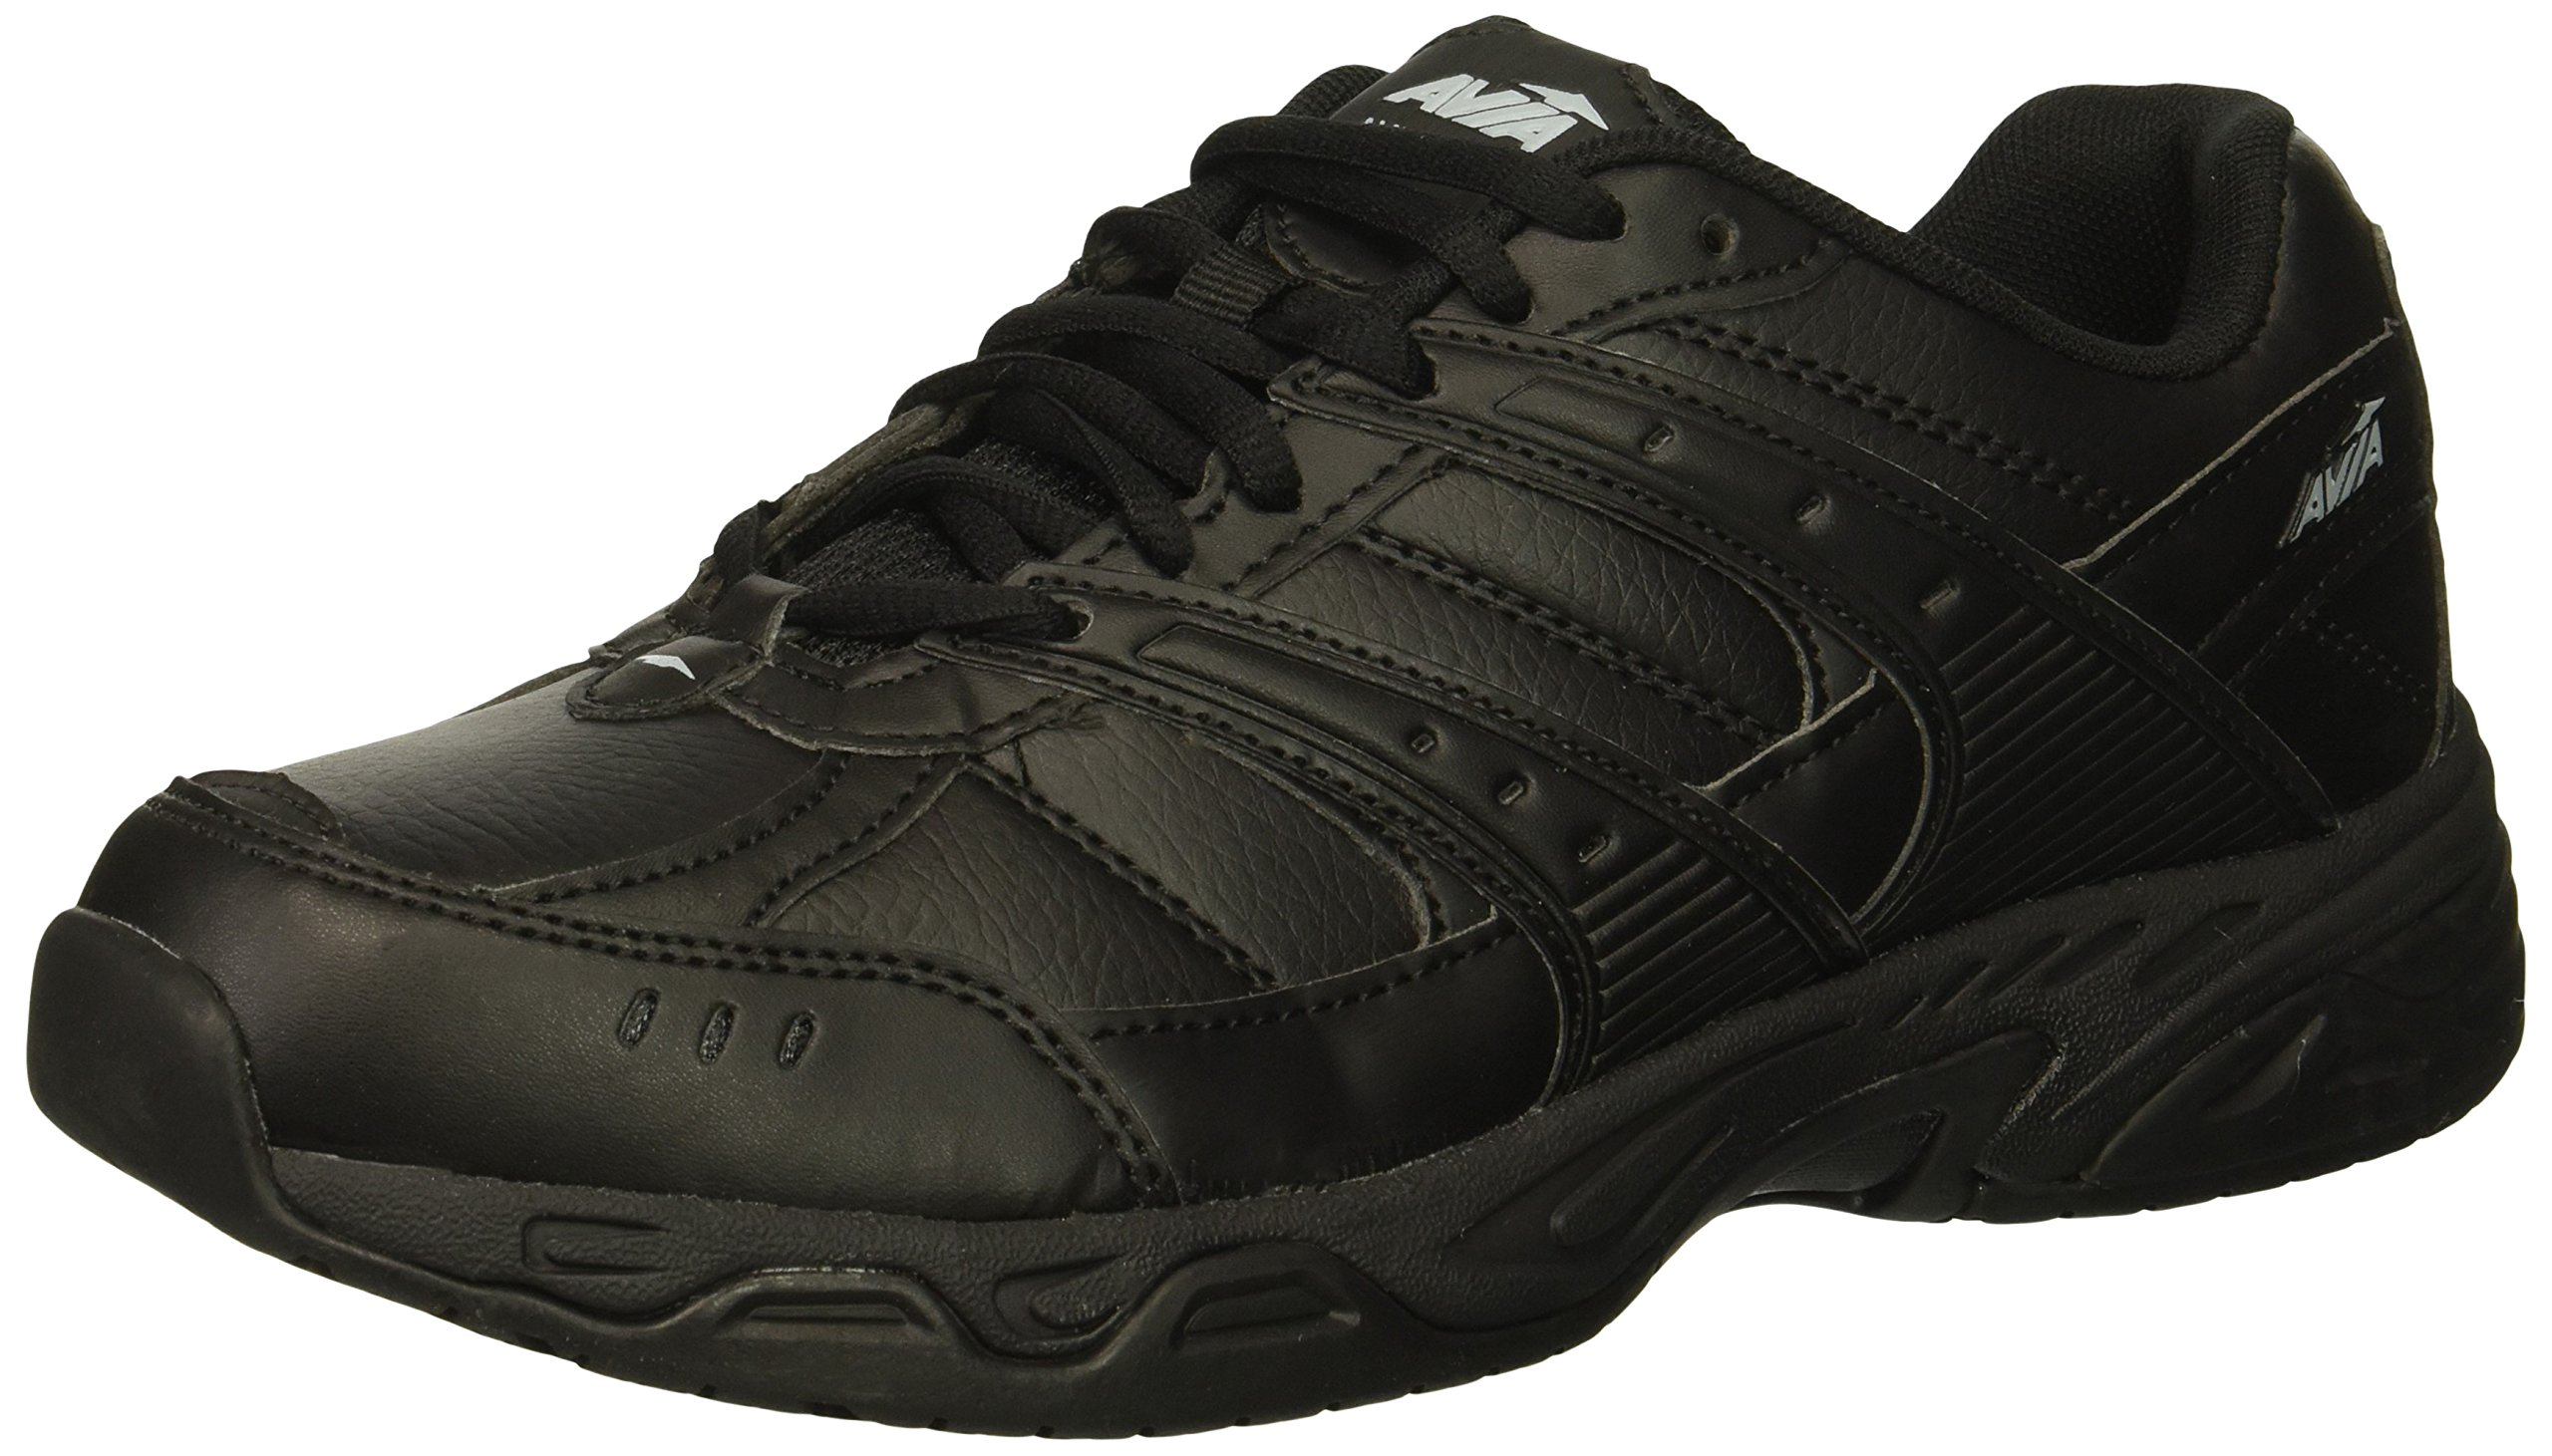 Avia Women's Avi-Union II Food Service Shoe, Black/Castle Rock, 8.5 Medium US